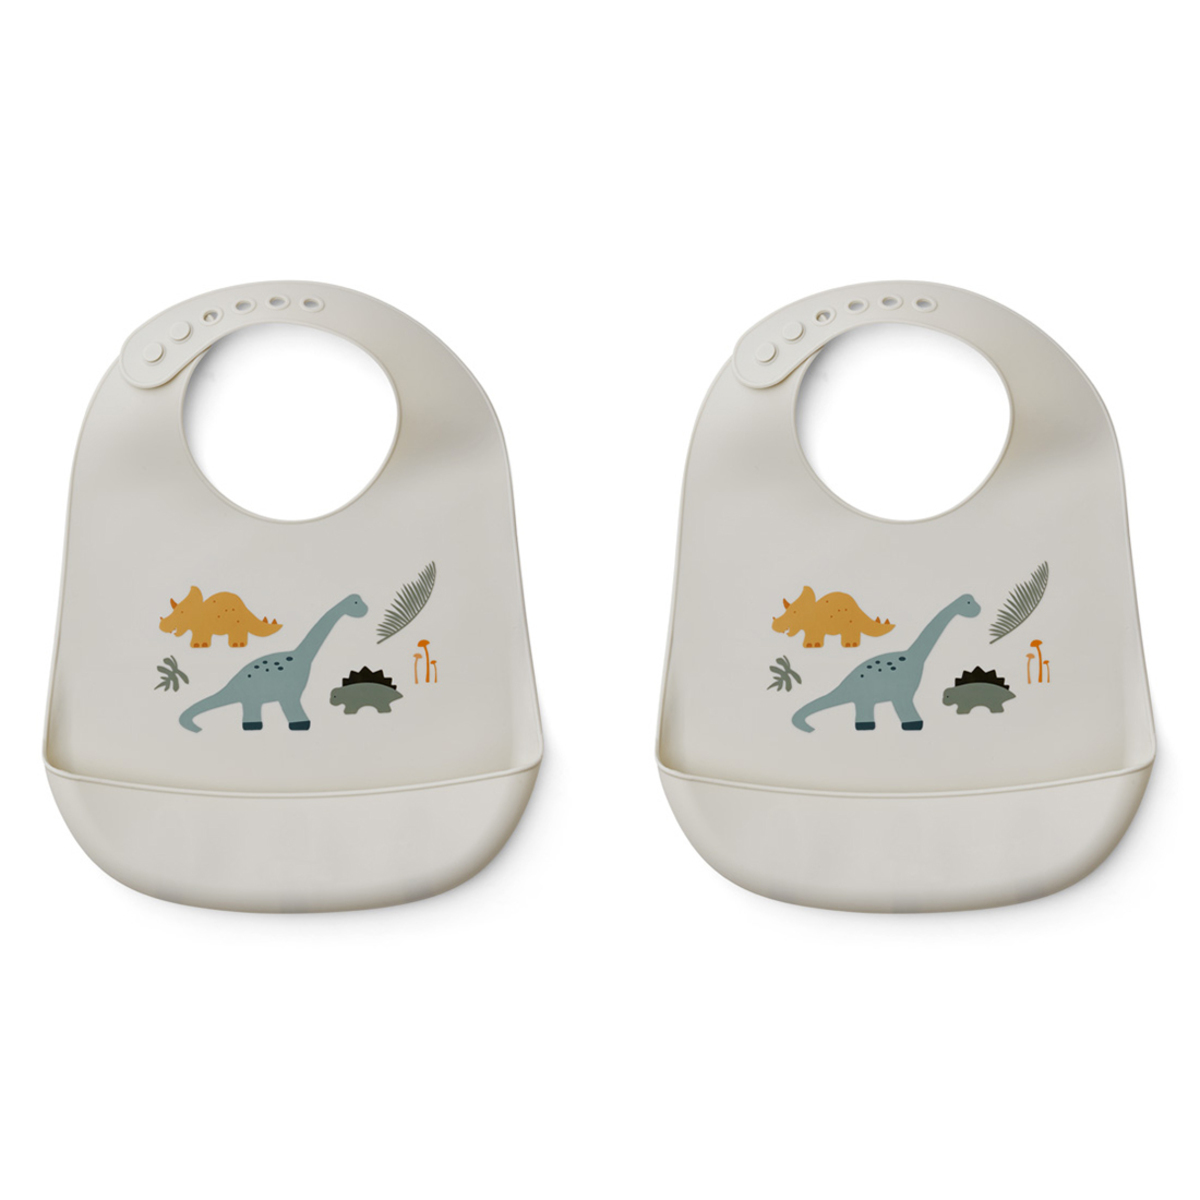 Bavoir Lot de 2 Bavoirs Tilda - Dino Mix Lot de 2 Bavoirs Tilda - Dino Mix